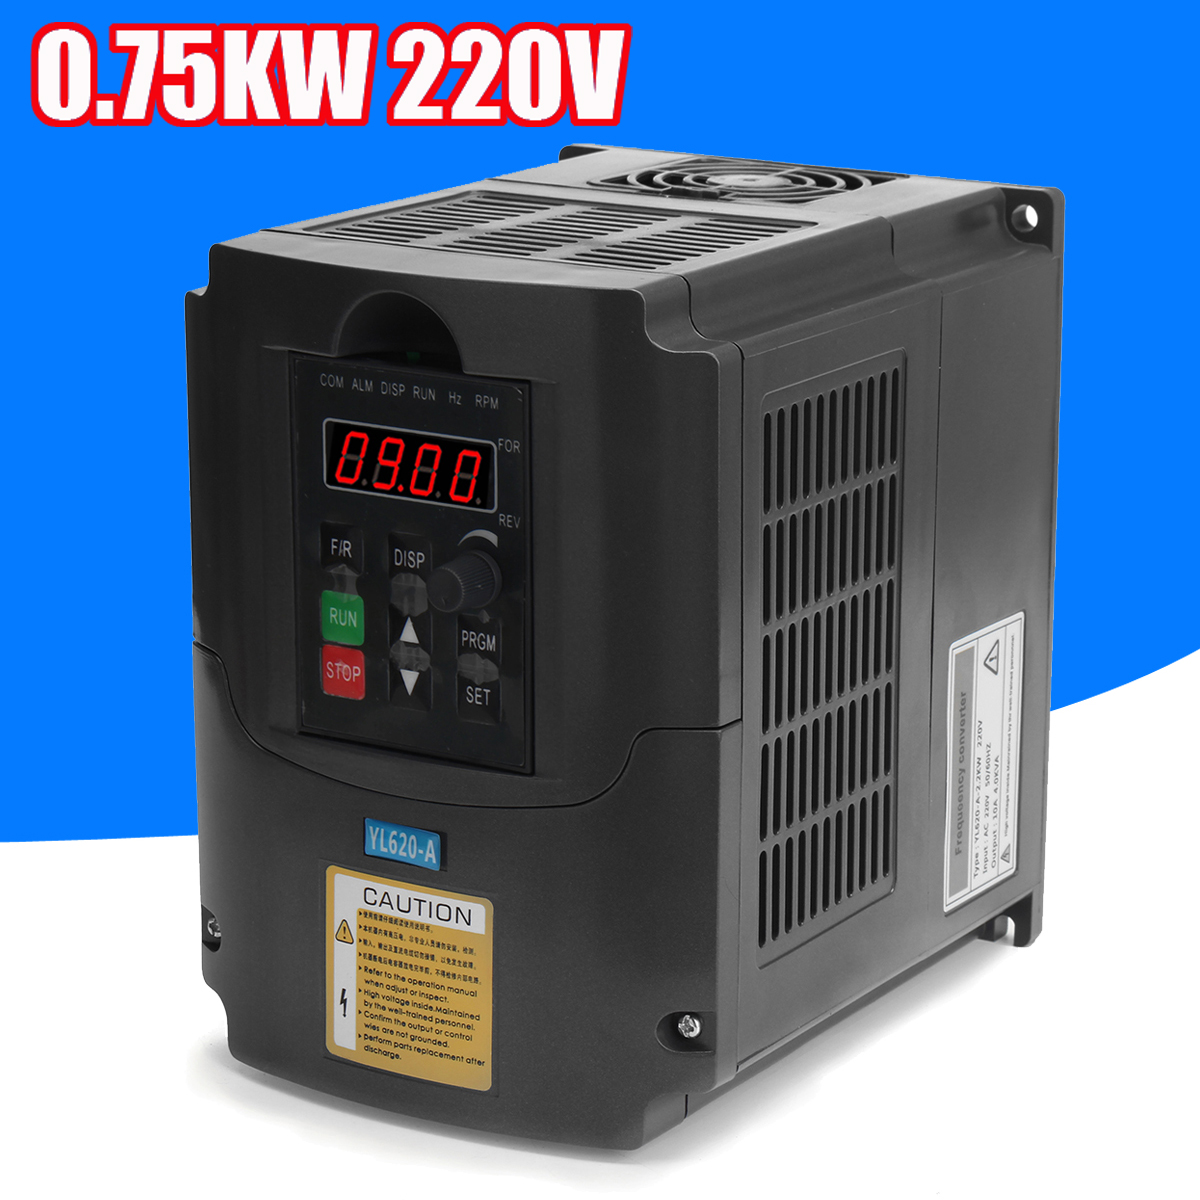 0.75kw 220V AC Variable Frequency Inverter Converter 3 Phase Output 50-60Hz Single Phase Input Space Voltage Vector Modulation baileigh wl 1840vs heavy duty variable speed wood turning lathe single phase 220v 0 to 3200 rpm inverter driven